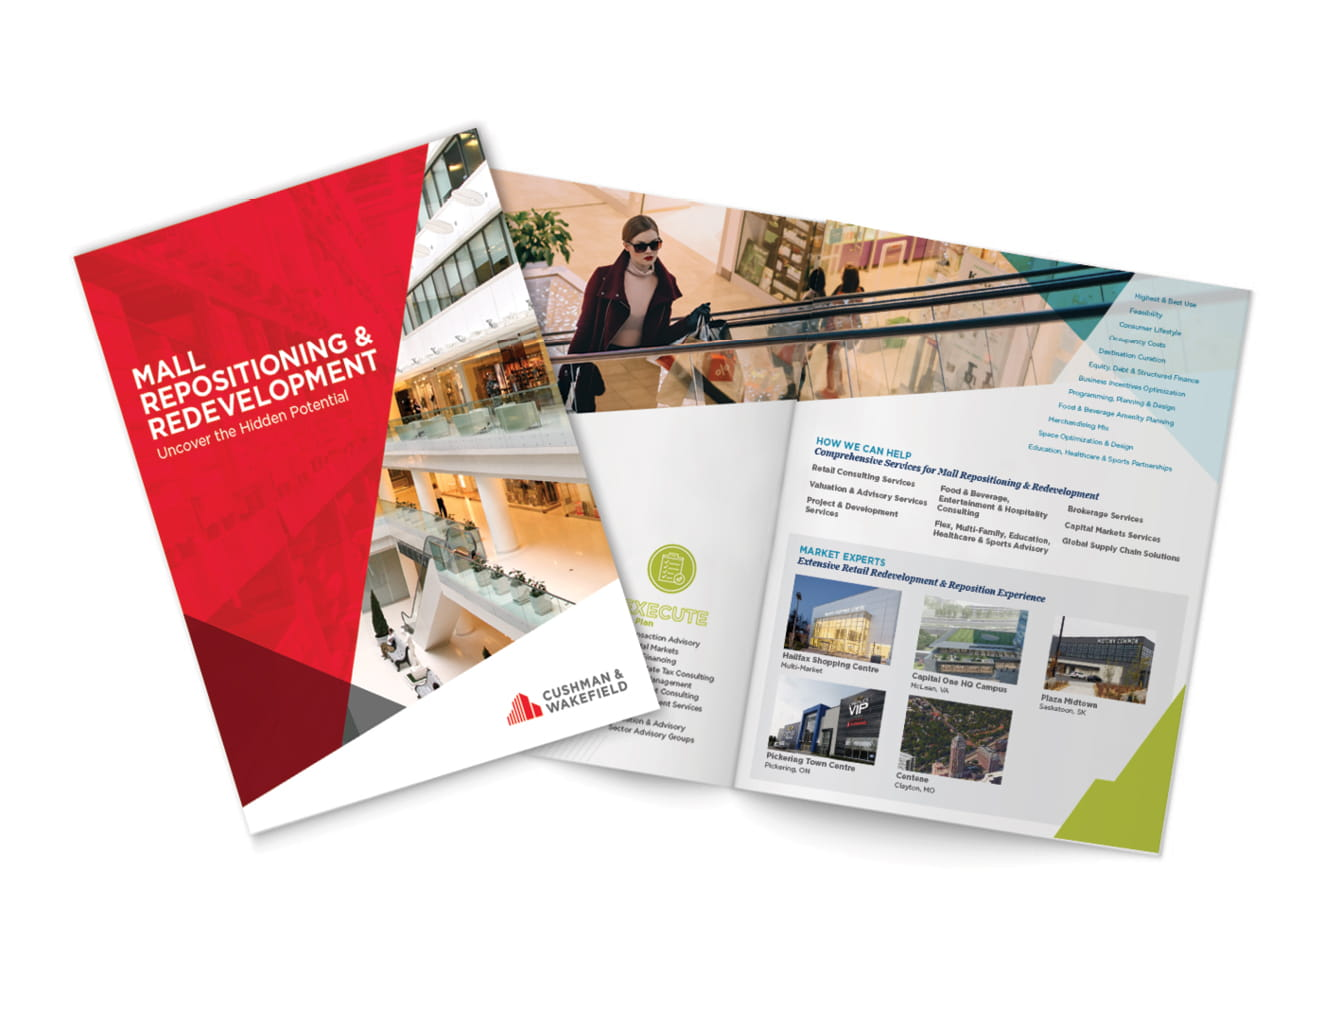 Mall Repositioning and Redevelopment Brochure Thumbnail Image